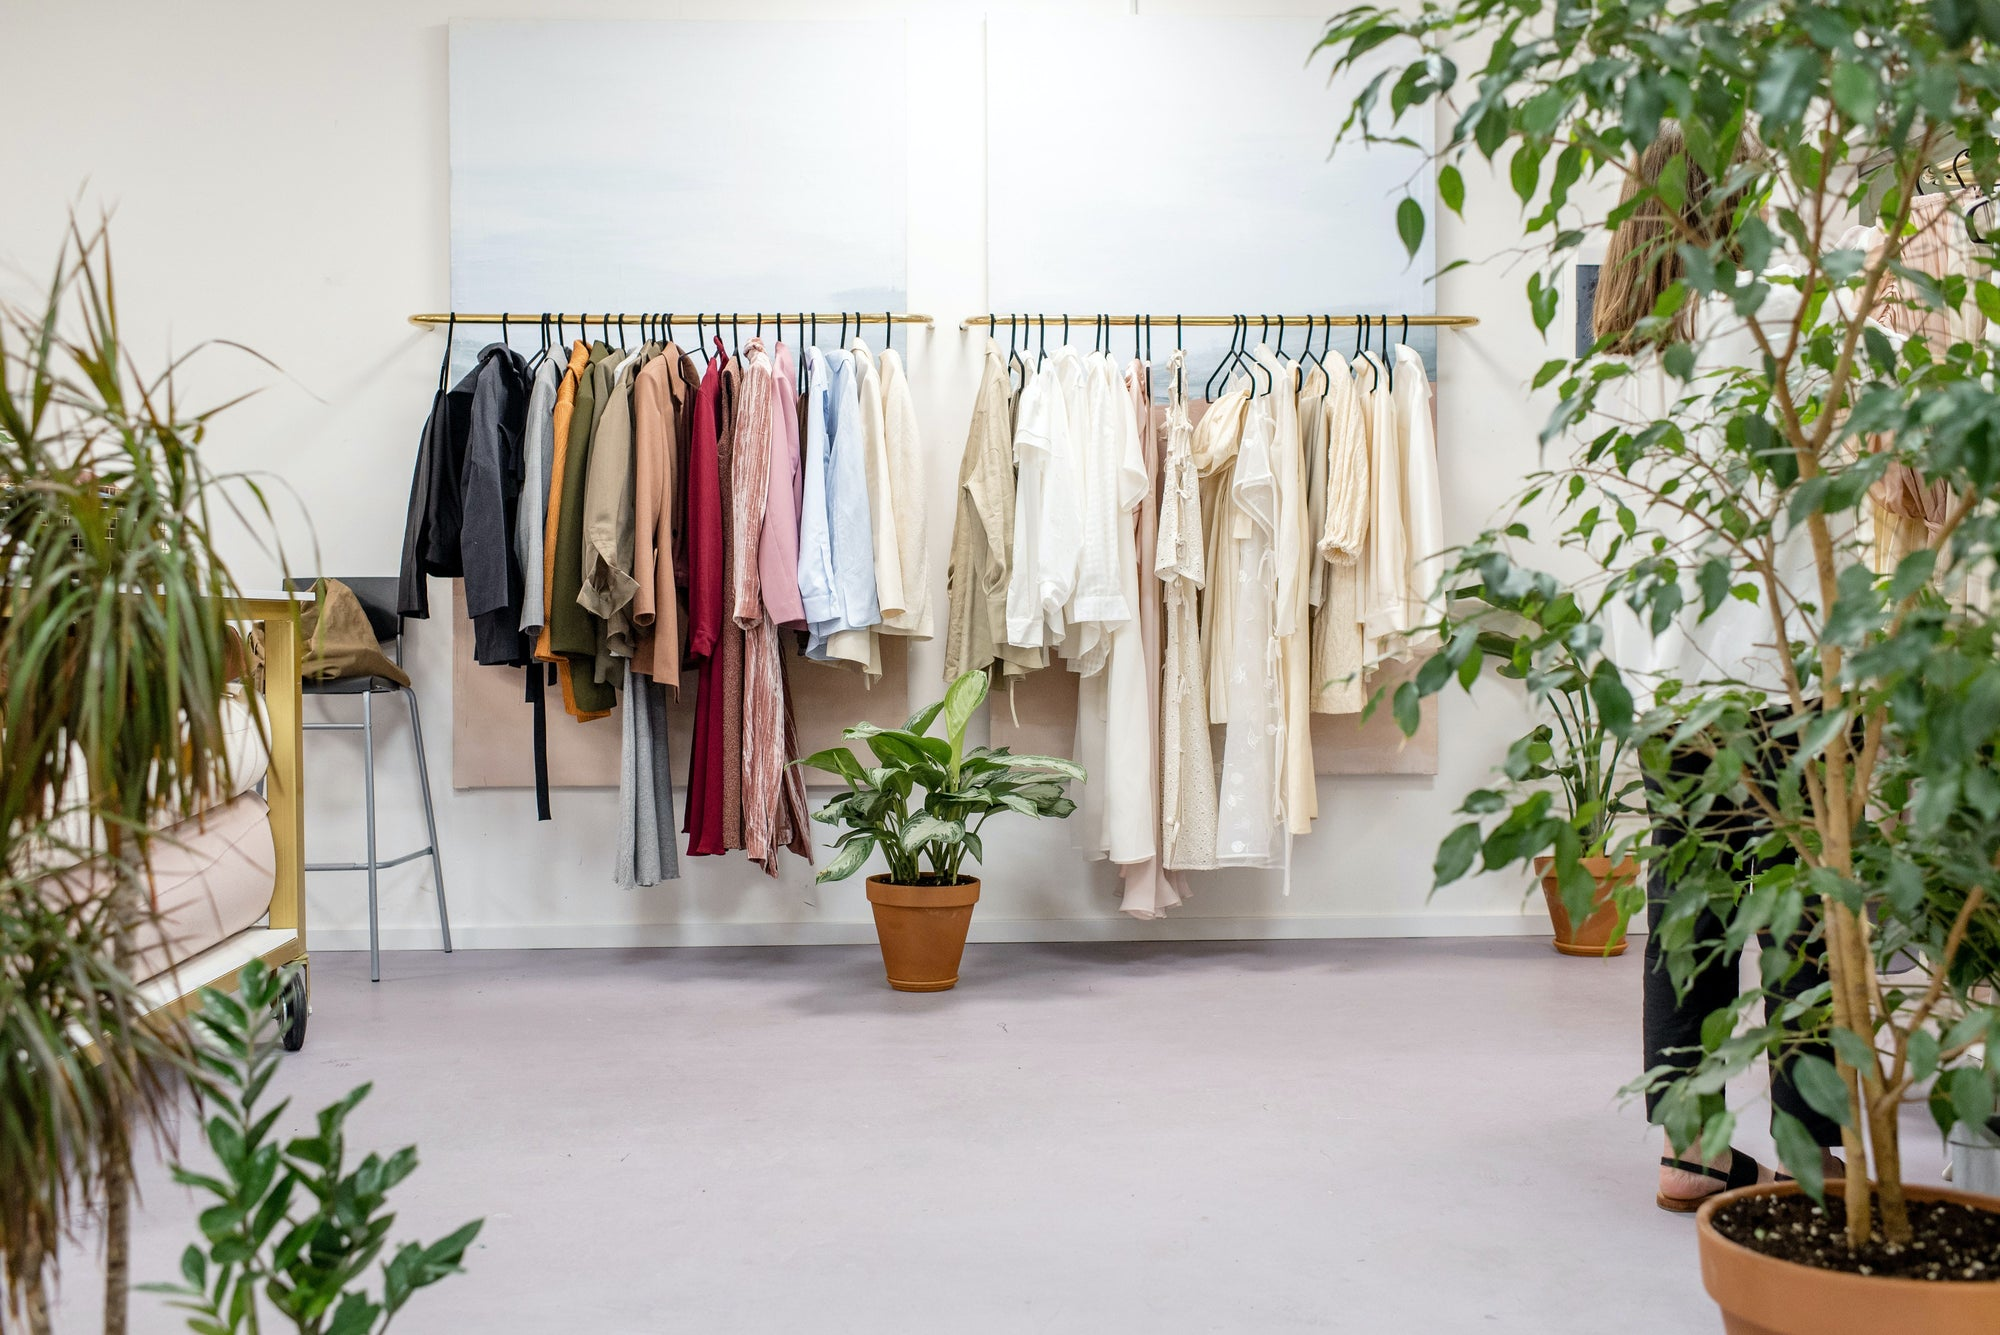 Indoor plants in an open room with one clothes rack